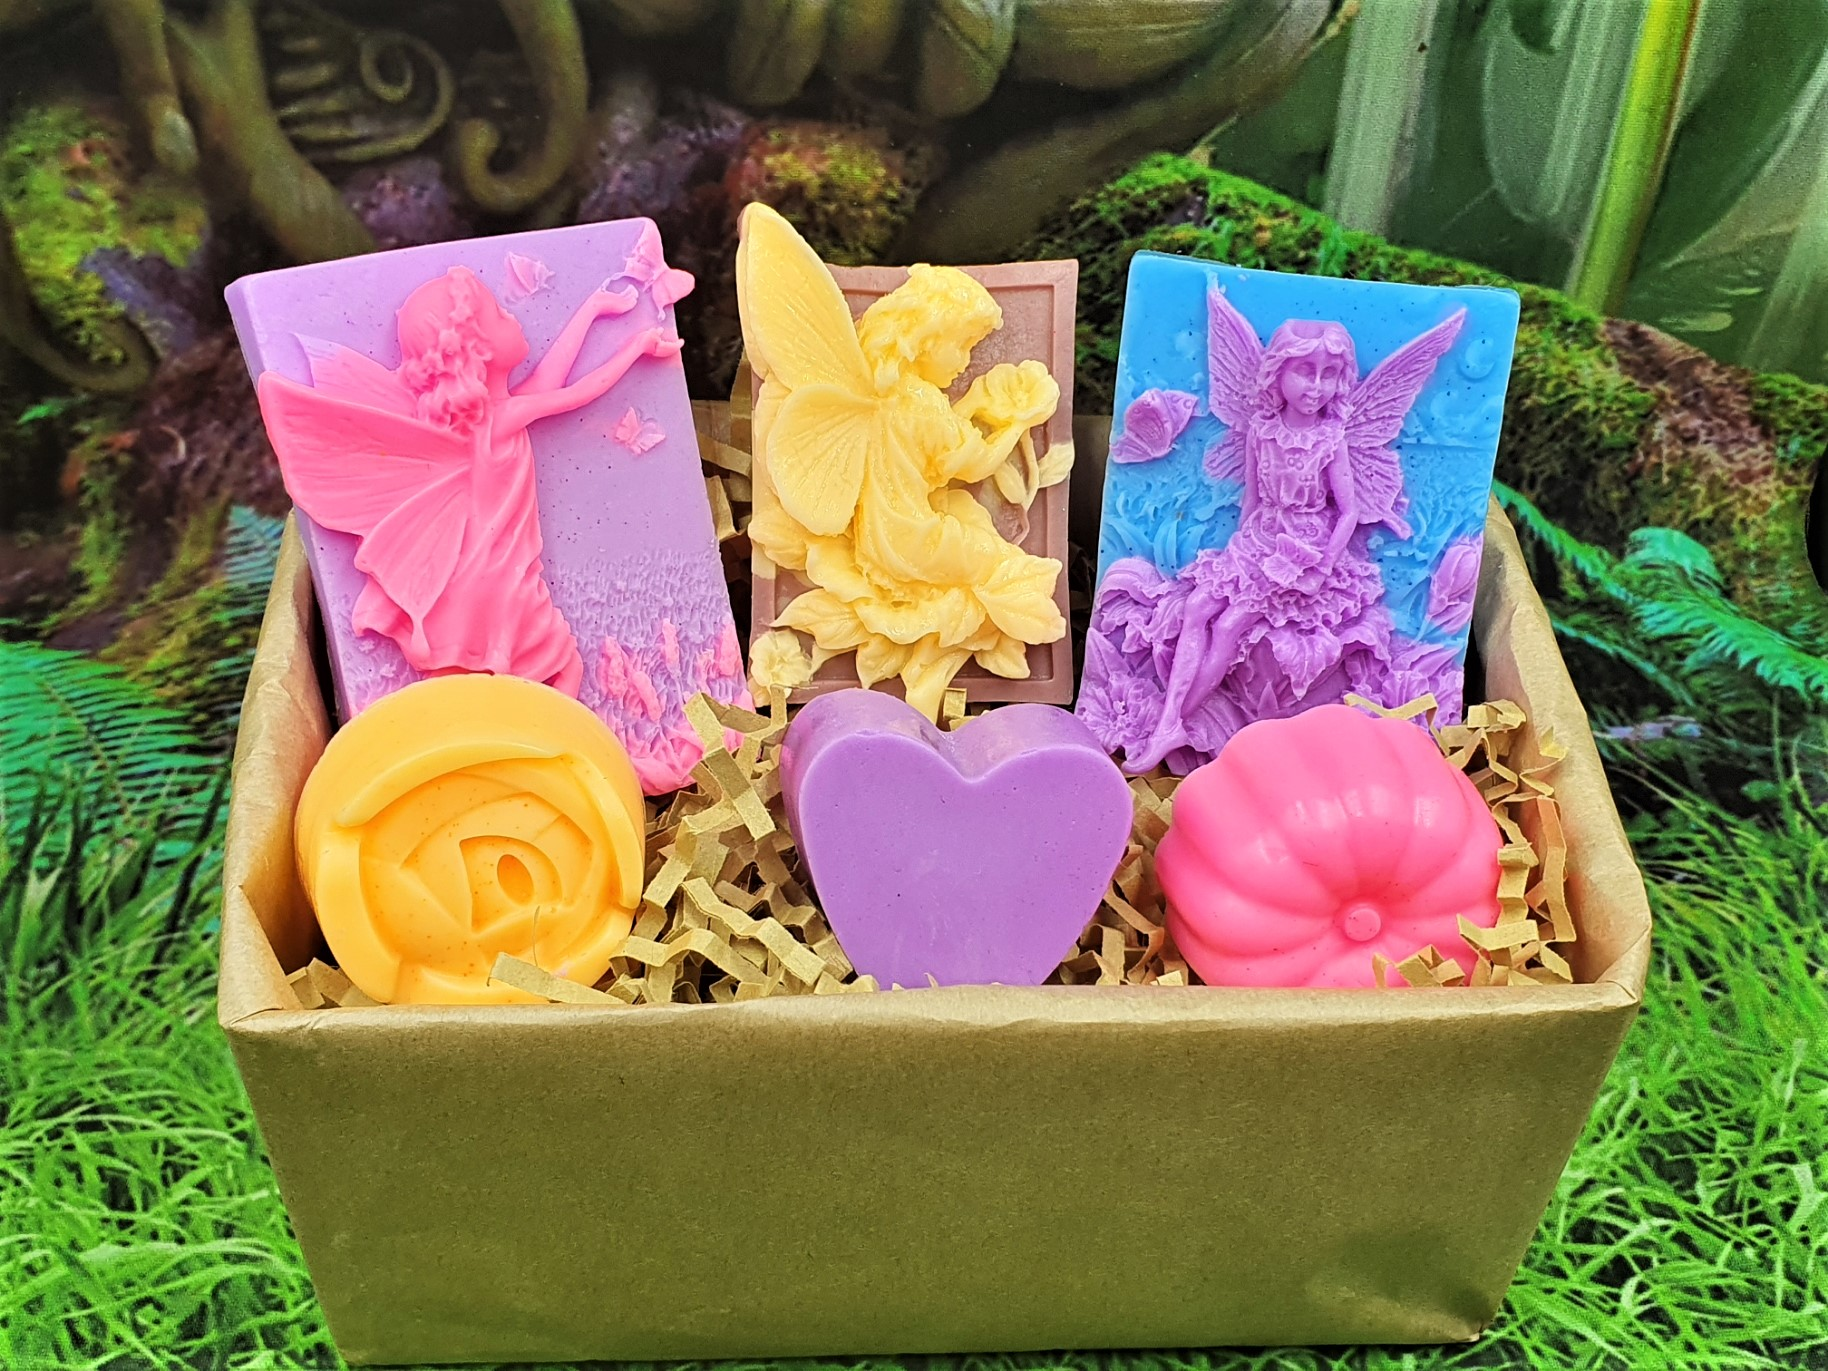 Flower Fairies Soap Gift Box, with essential oils